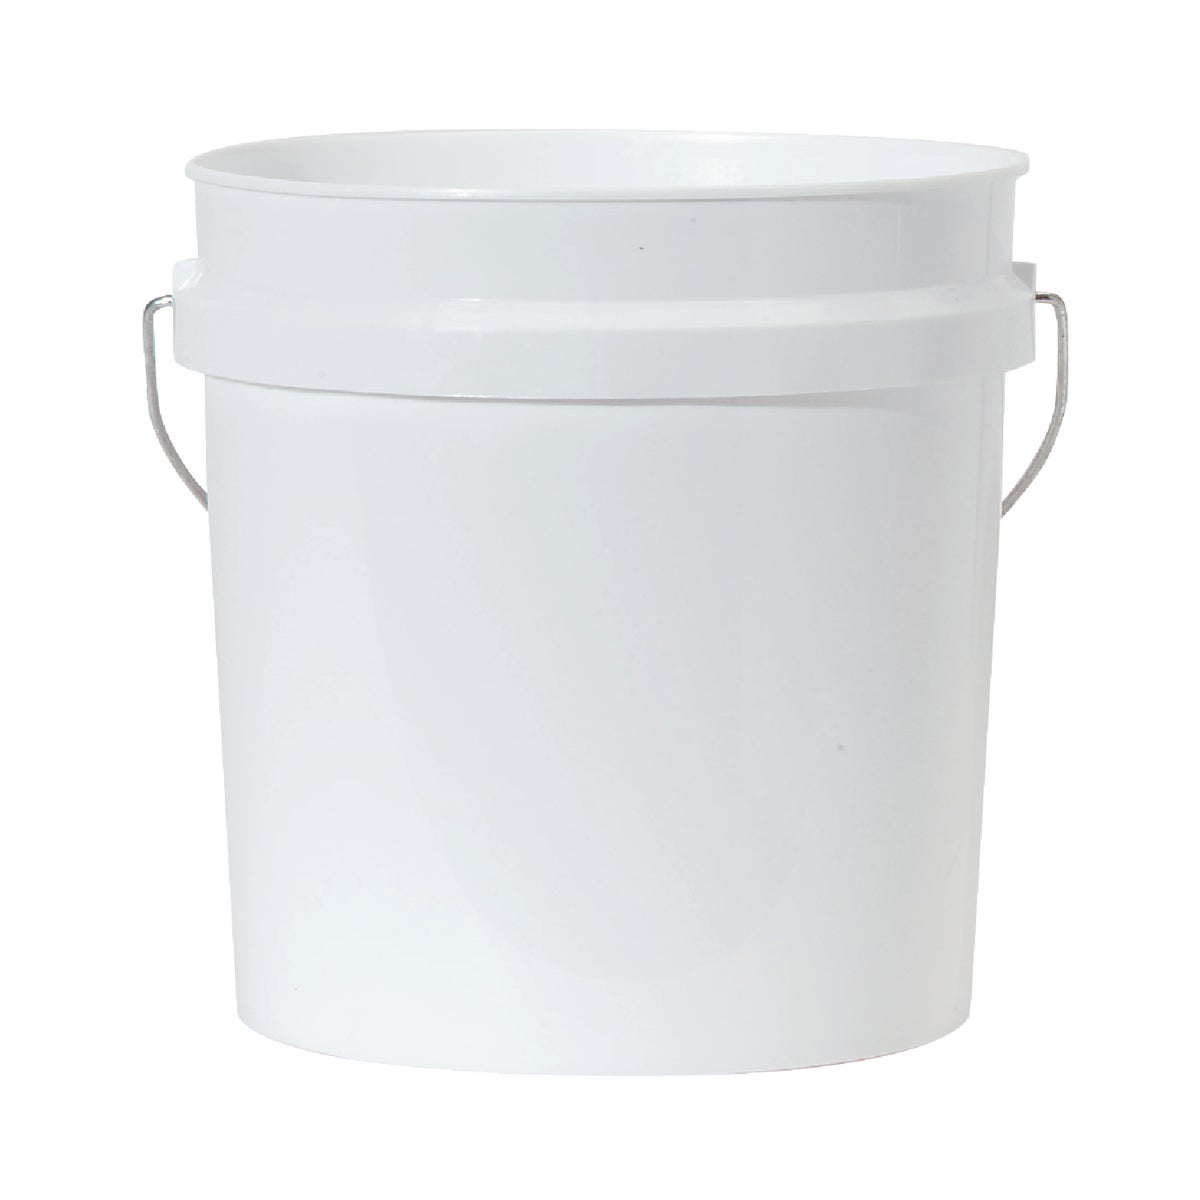 2GAL PLASTIC PAIL - 2GL by Leaktite Corporation